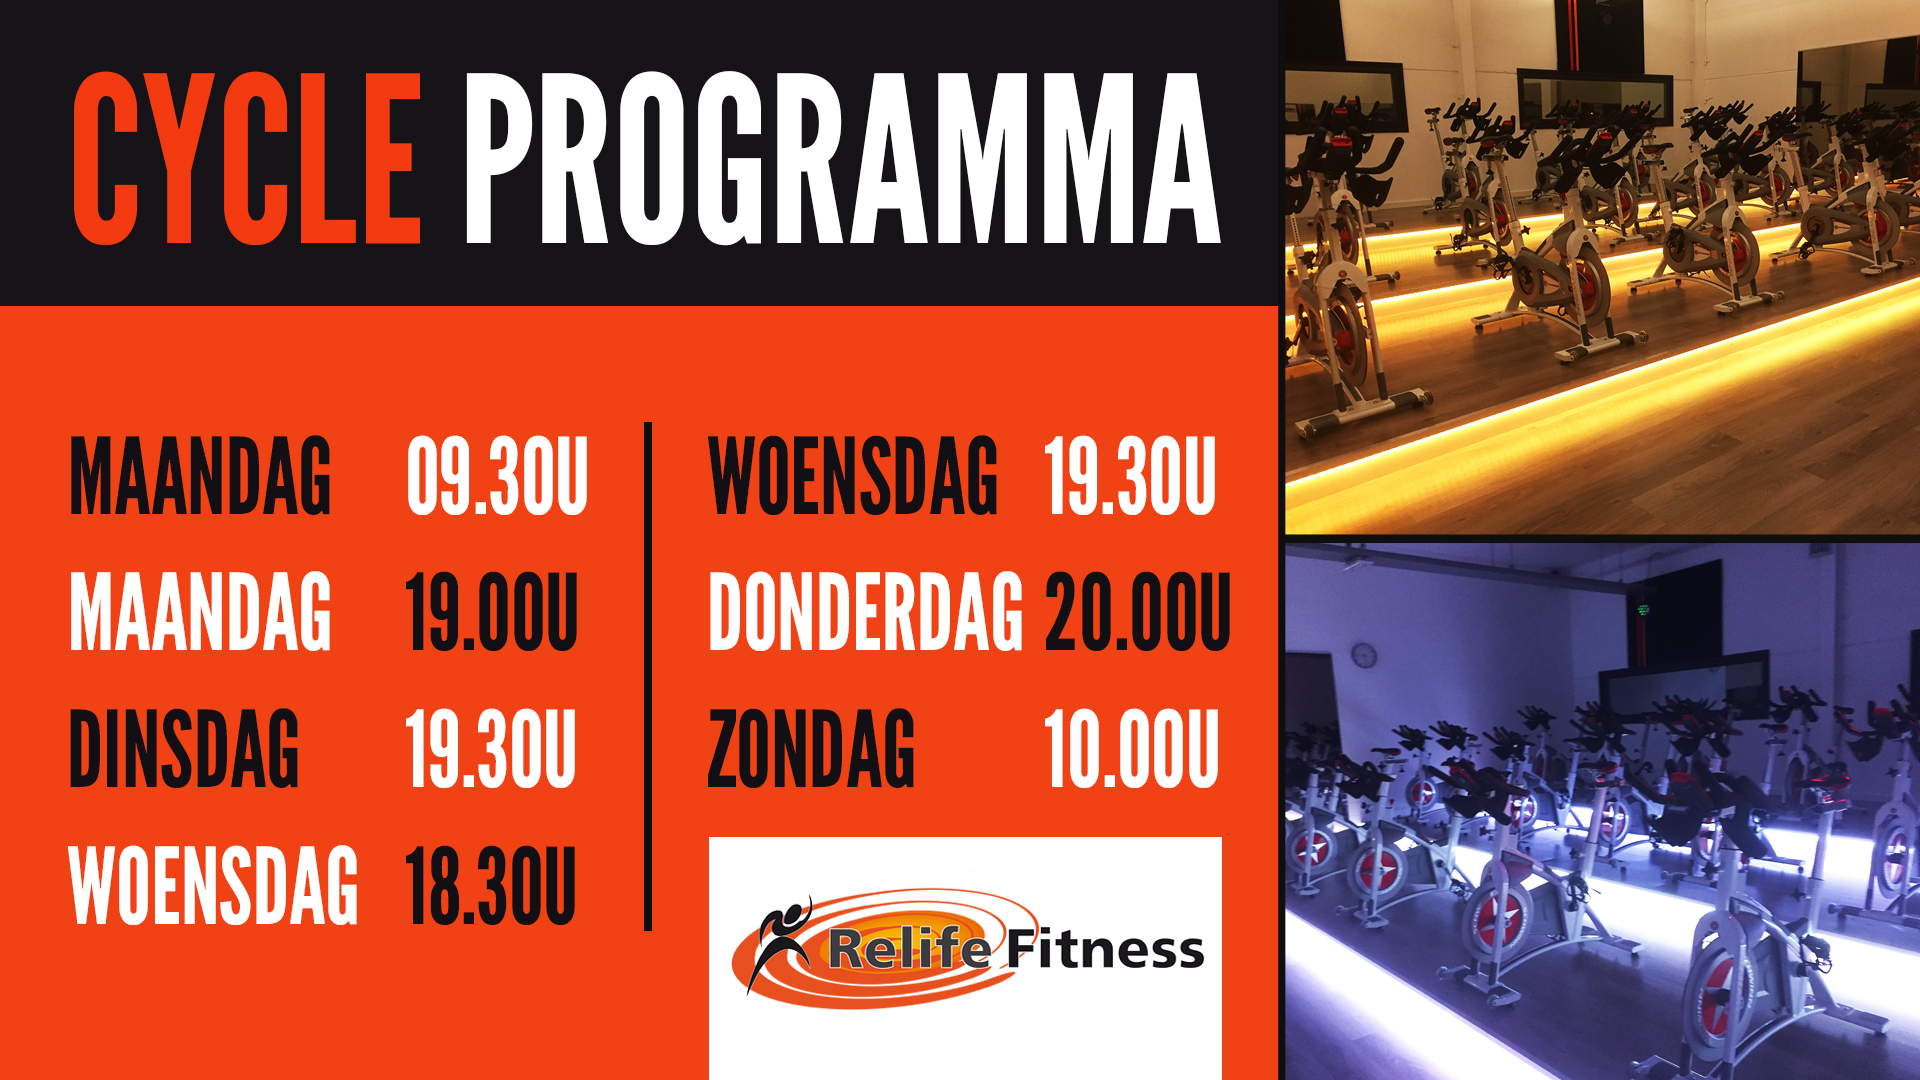 Relife Fitness - Cycle Programma OKT2020-TV